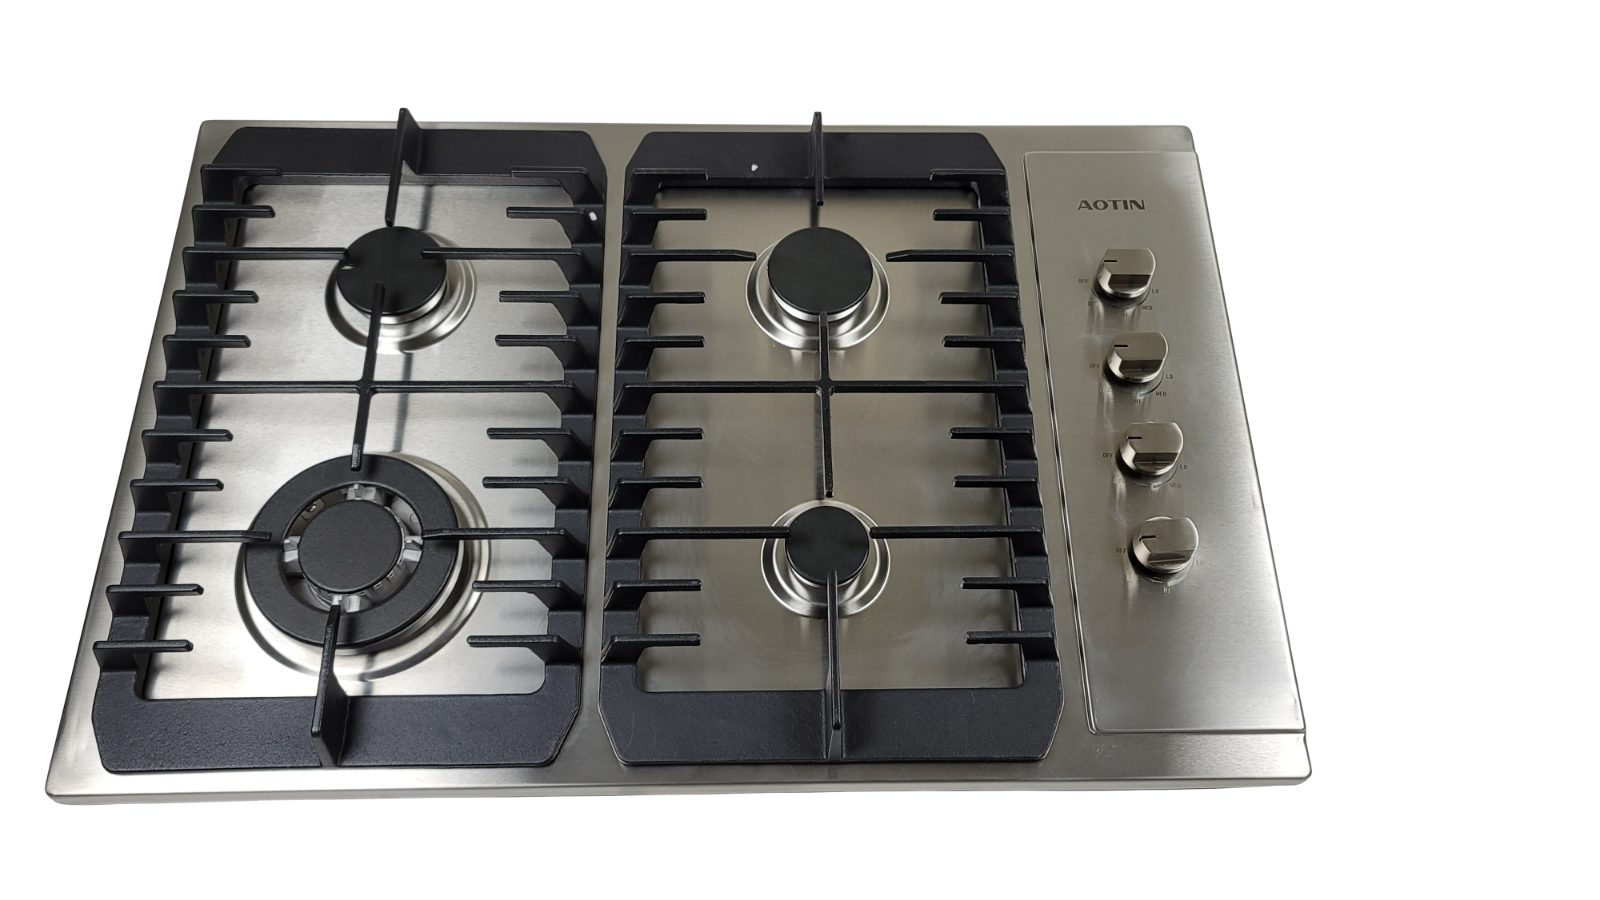 "AOTIN 30"" Stainless Steel 4 Burners Gas Cooktop Built-in LPG"